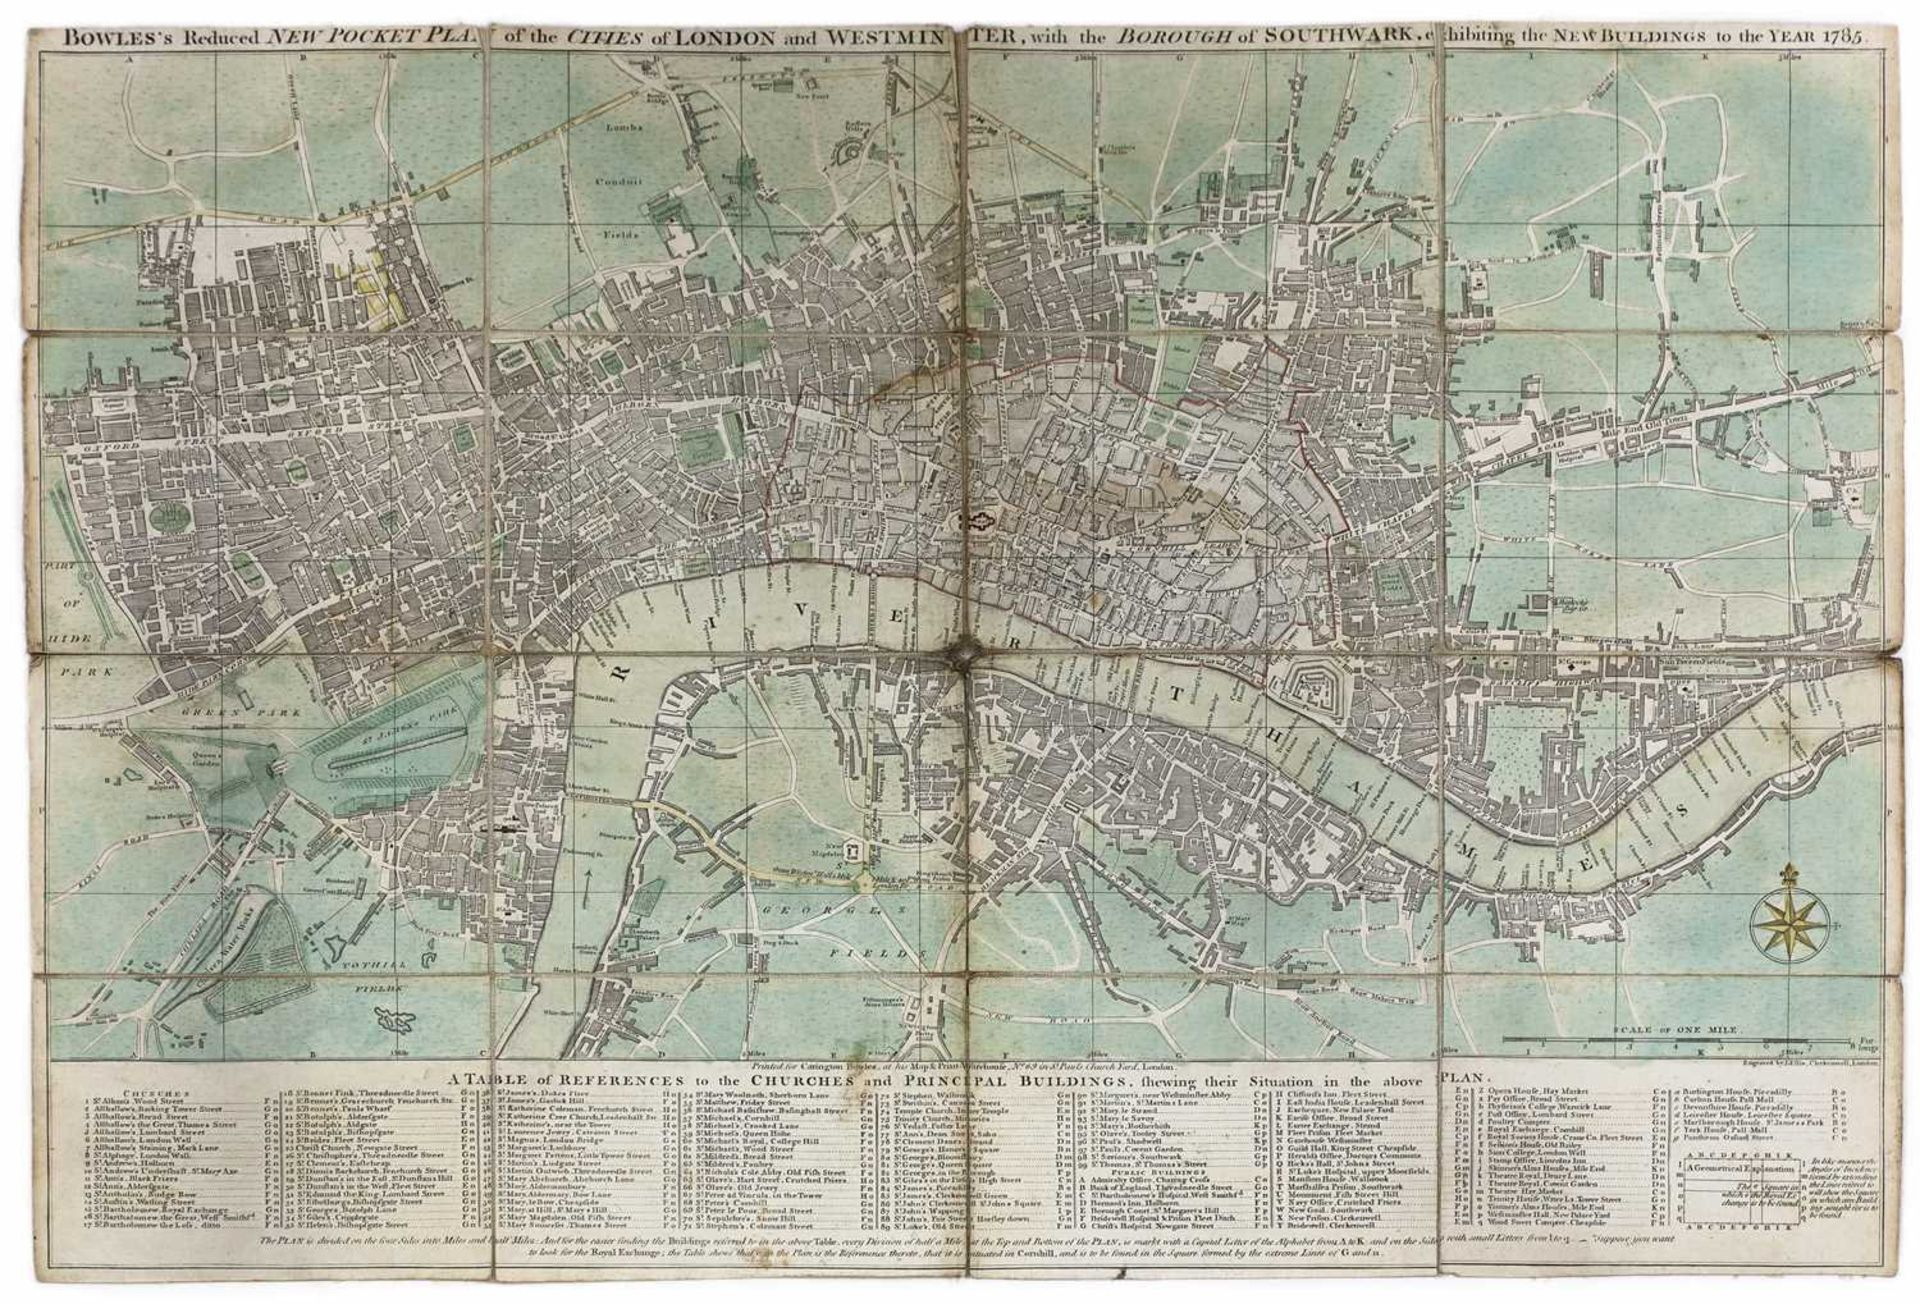 BOWLE'S REDUCED NEW POCKET PLAN OF THE CITIES OF LONDON AND WESTMINSTER 1785,